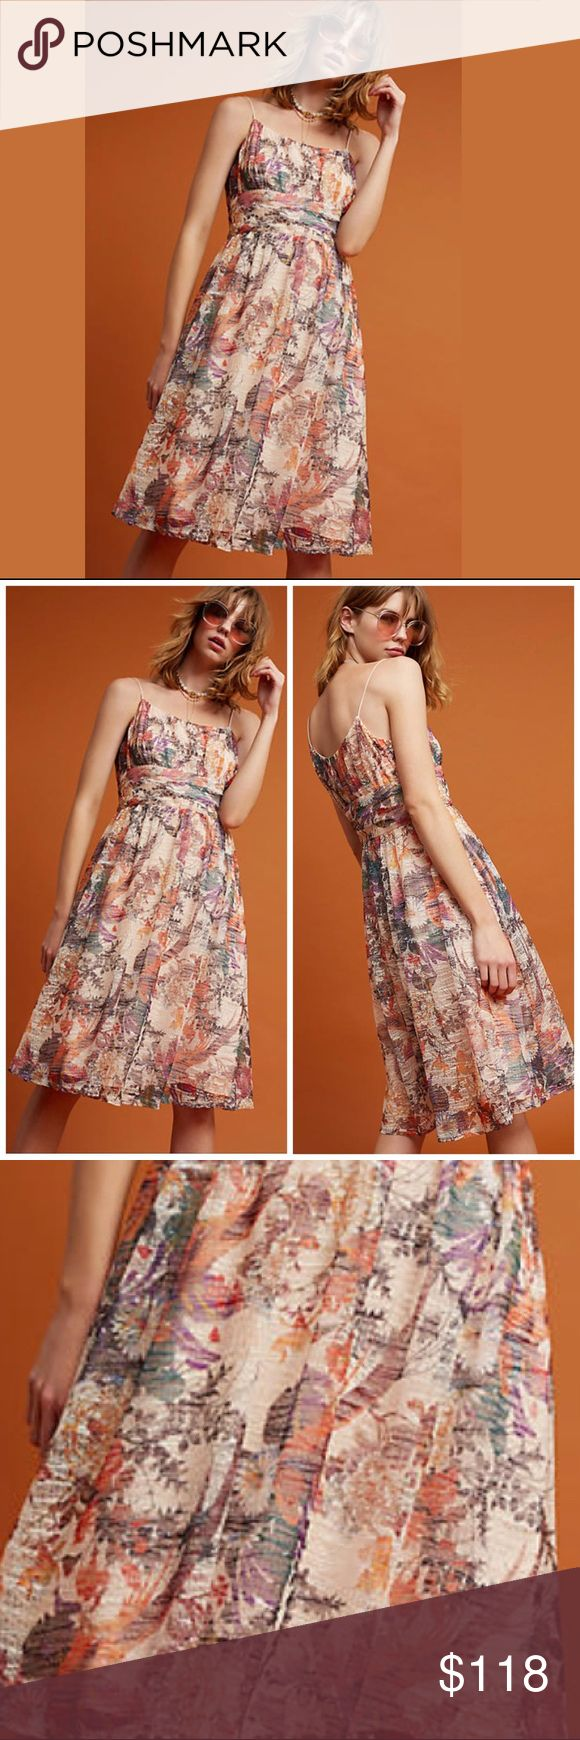 Anthropologie Maeve Floral Mesh Mackenzie Dress NWT When summer events call for garden-side seating, this floral dress effortlessly harmonizes with the scenery. By Maeve Fit-and-flare silhouette Side zip Polyester; Viscose lining Hand wash Imported Anthropologie Dresses Midi